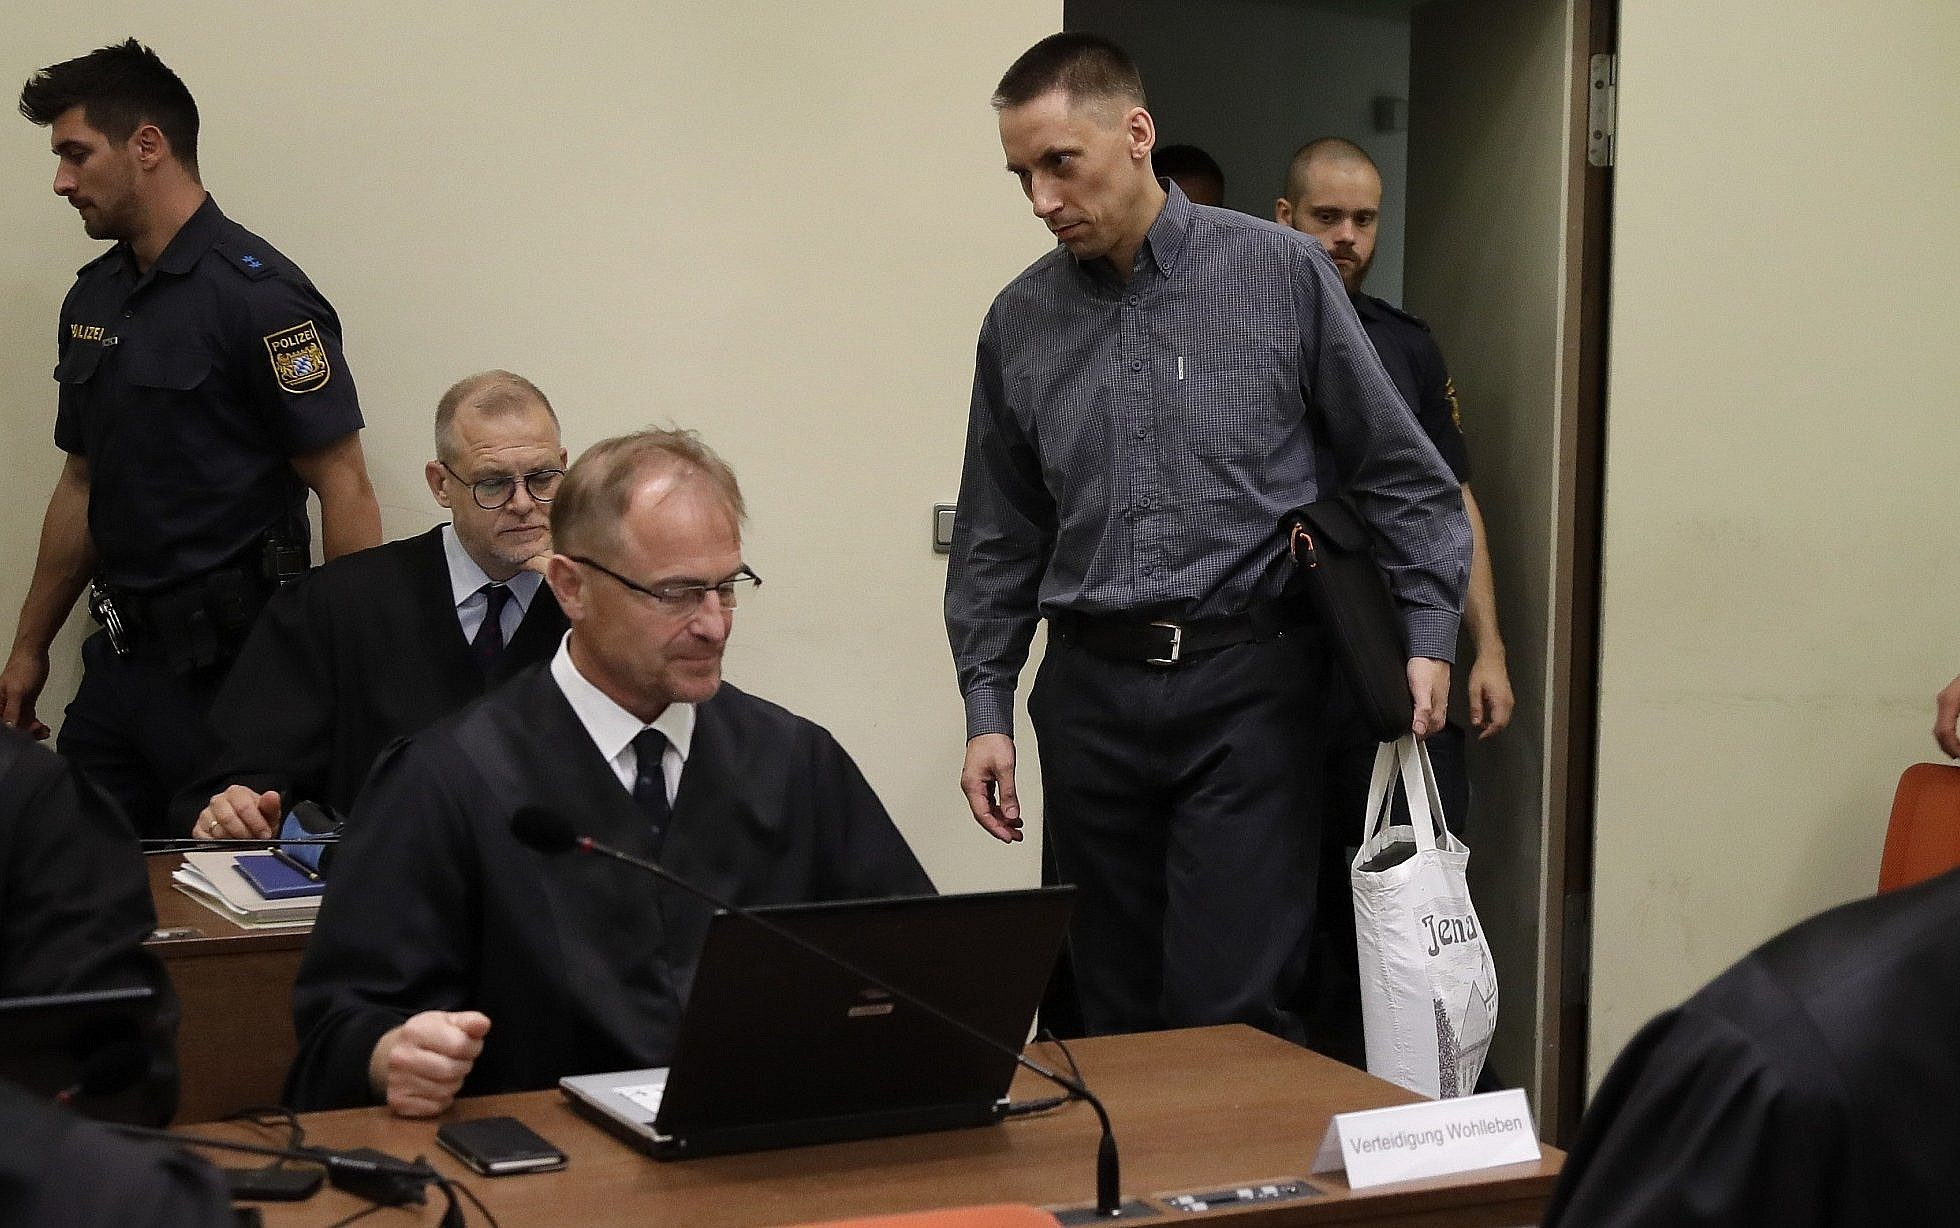 German court orders release of man convicted in neo-Nazi